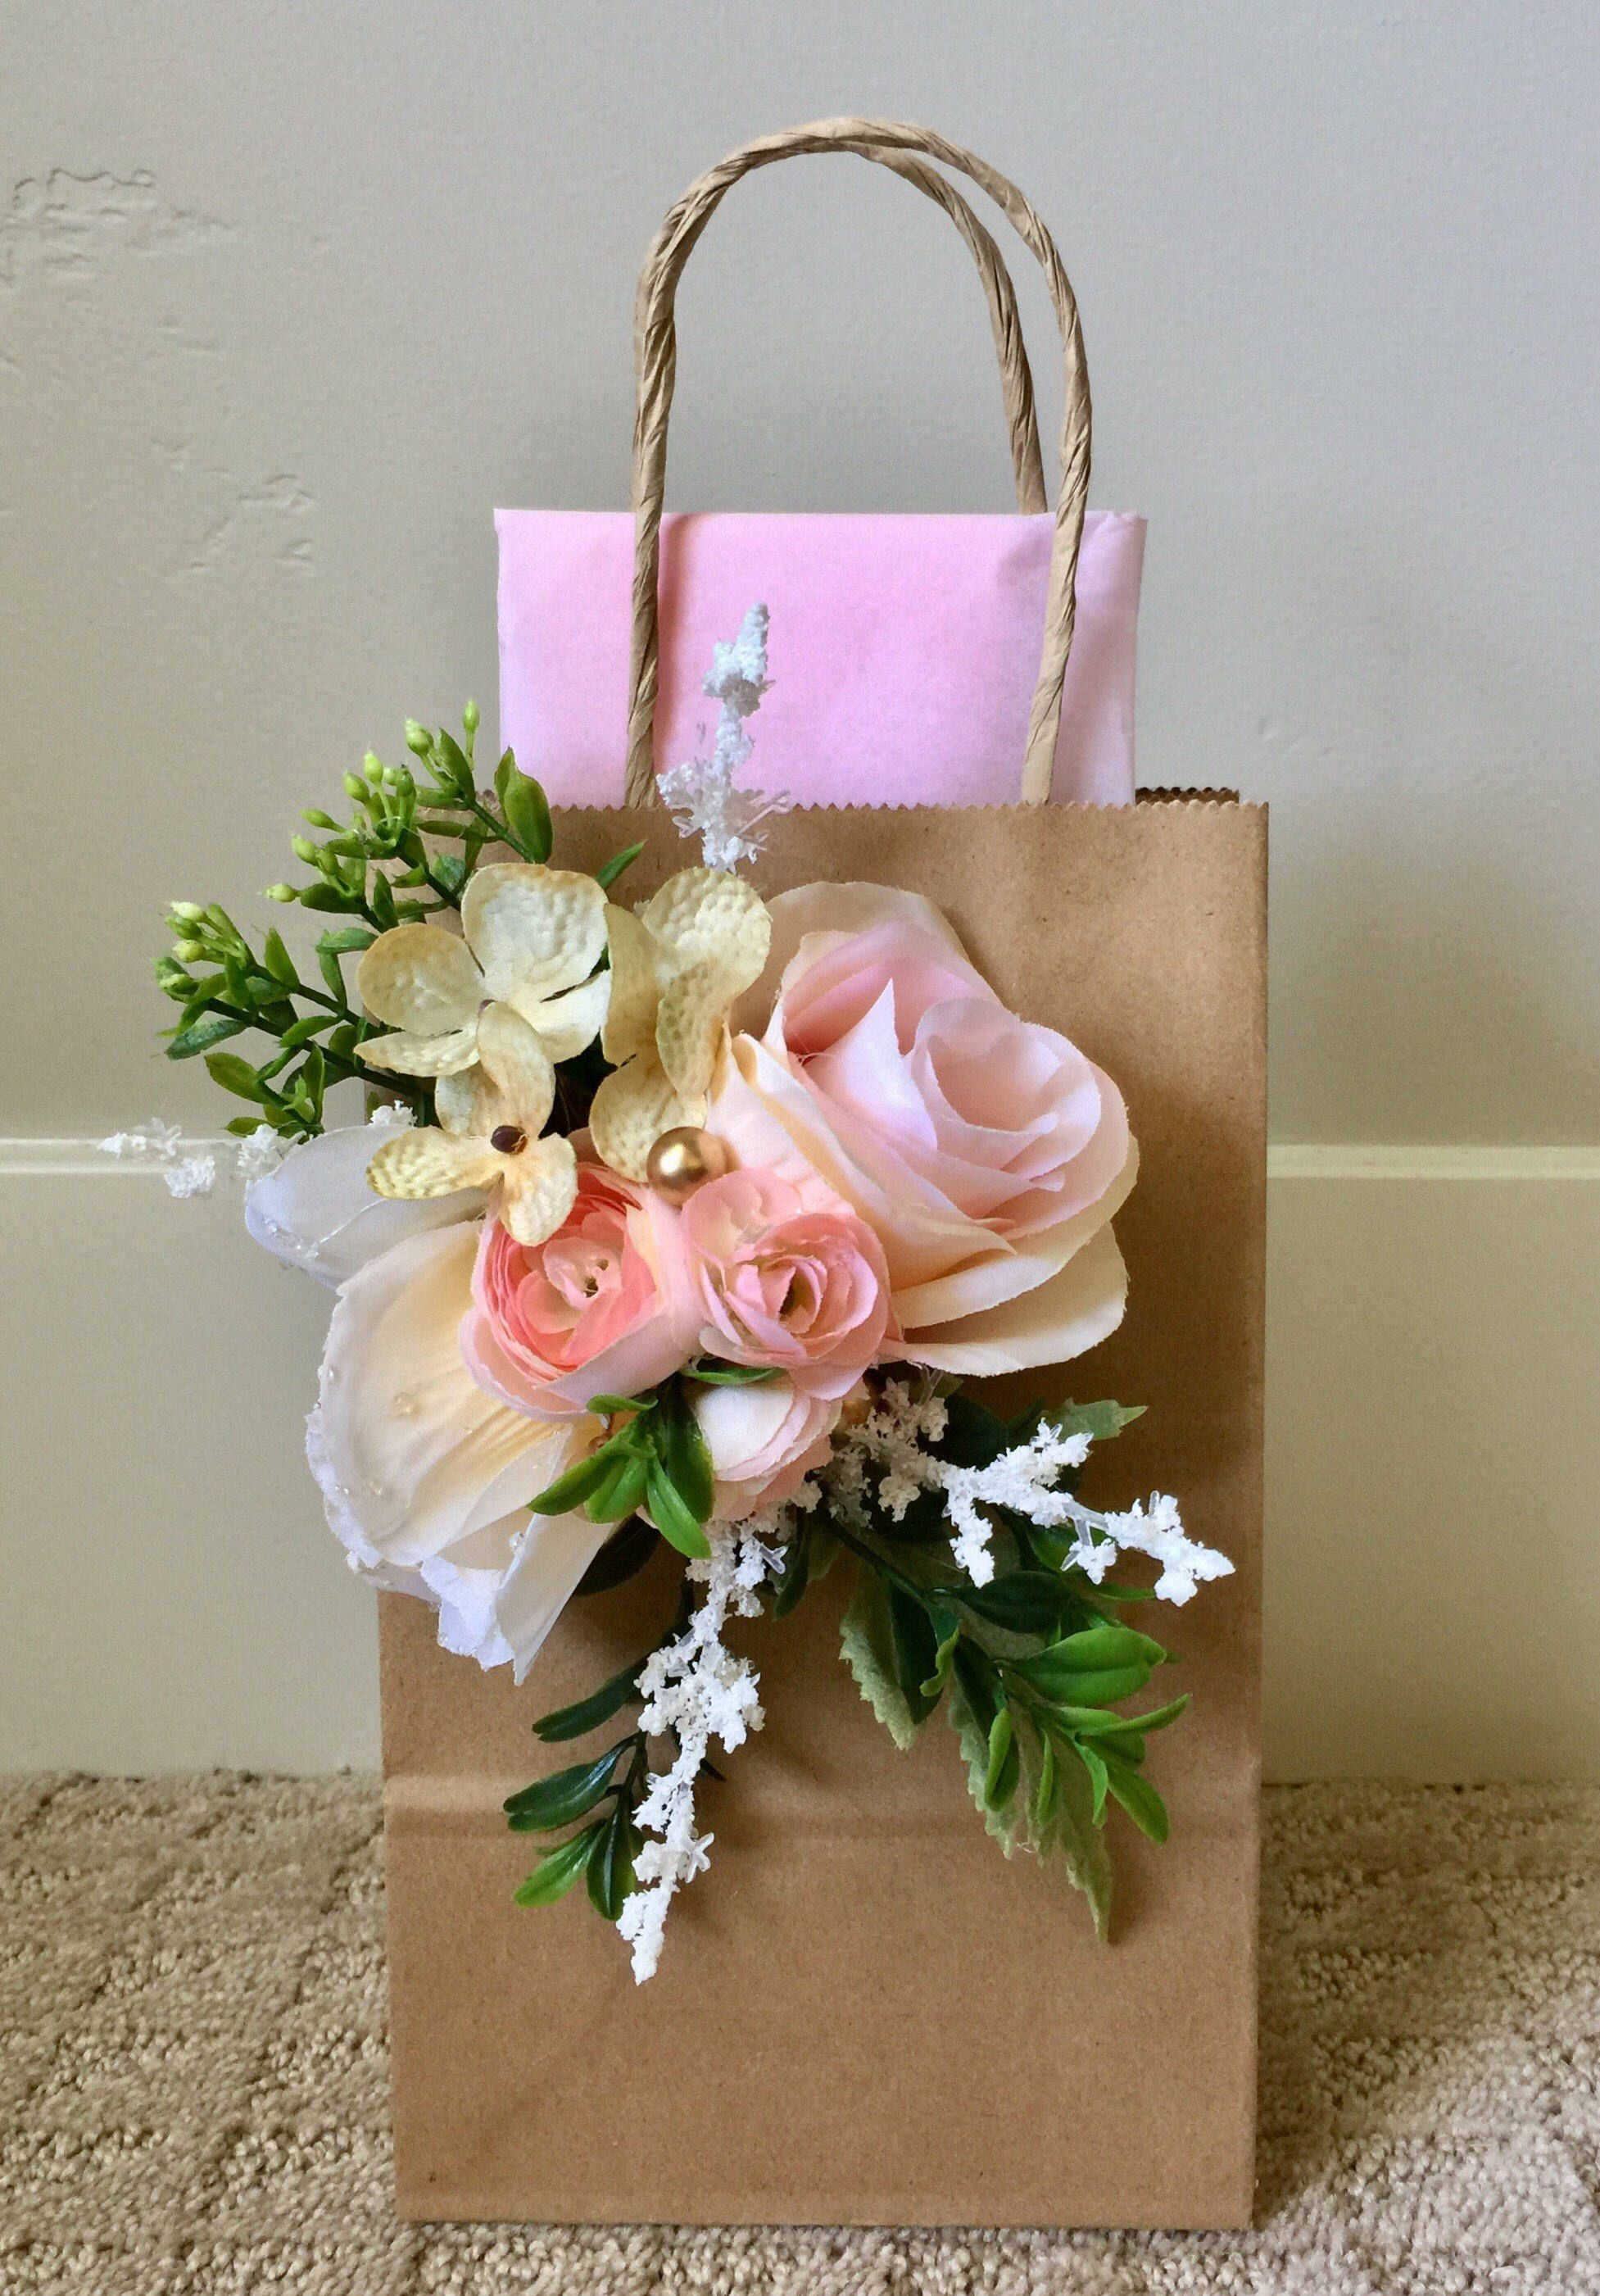 6 Piece Garden Party Pale Pinks , Gift Bags ,